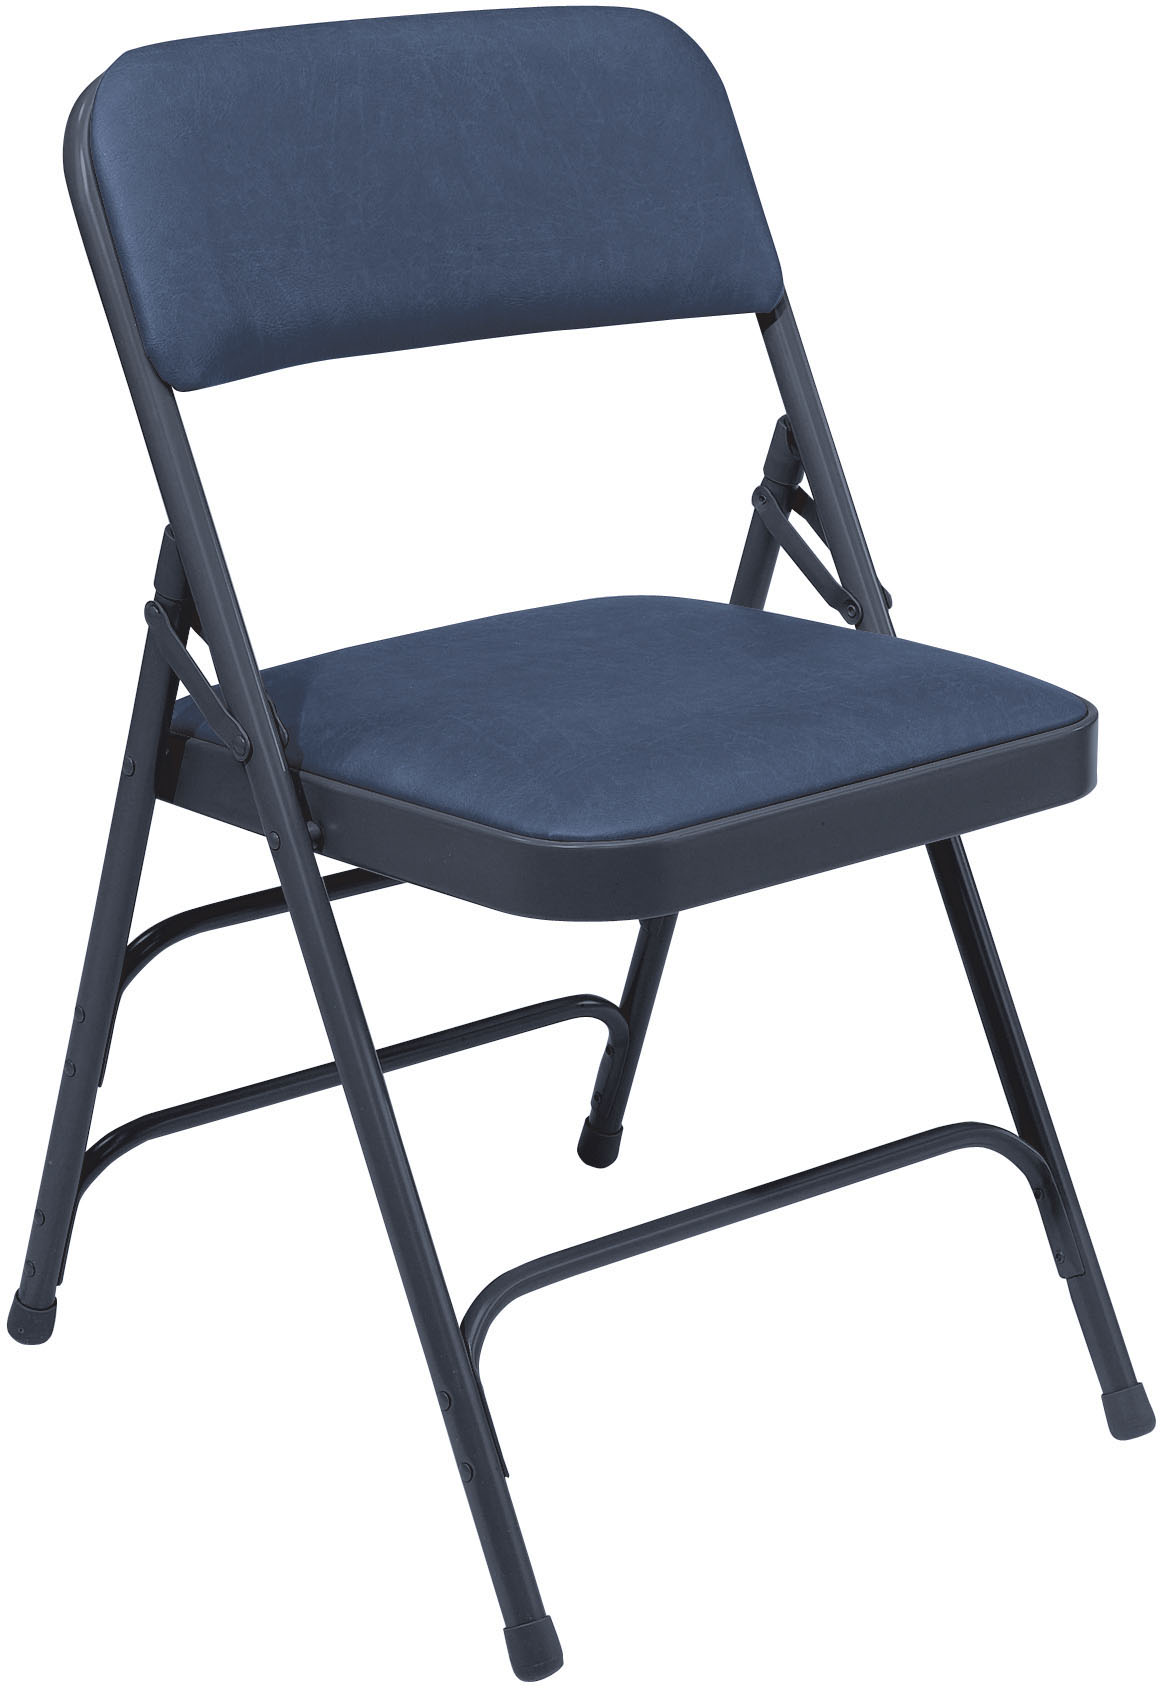 Triple Brace Vinyl Padded Steel Folding Chair 300 Lb